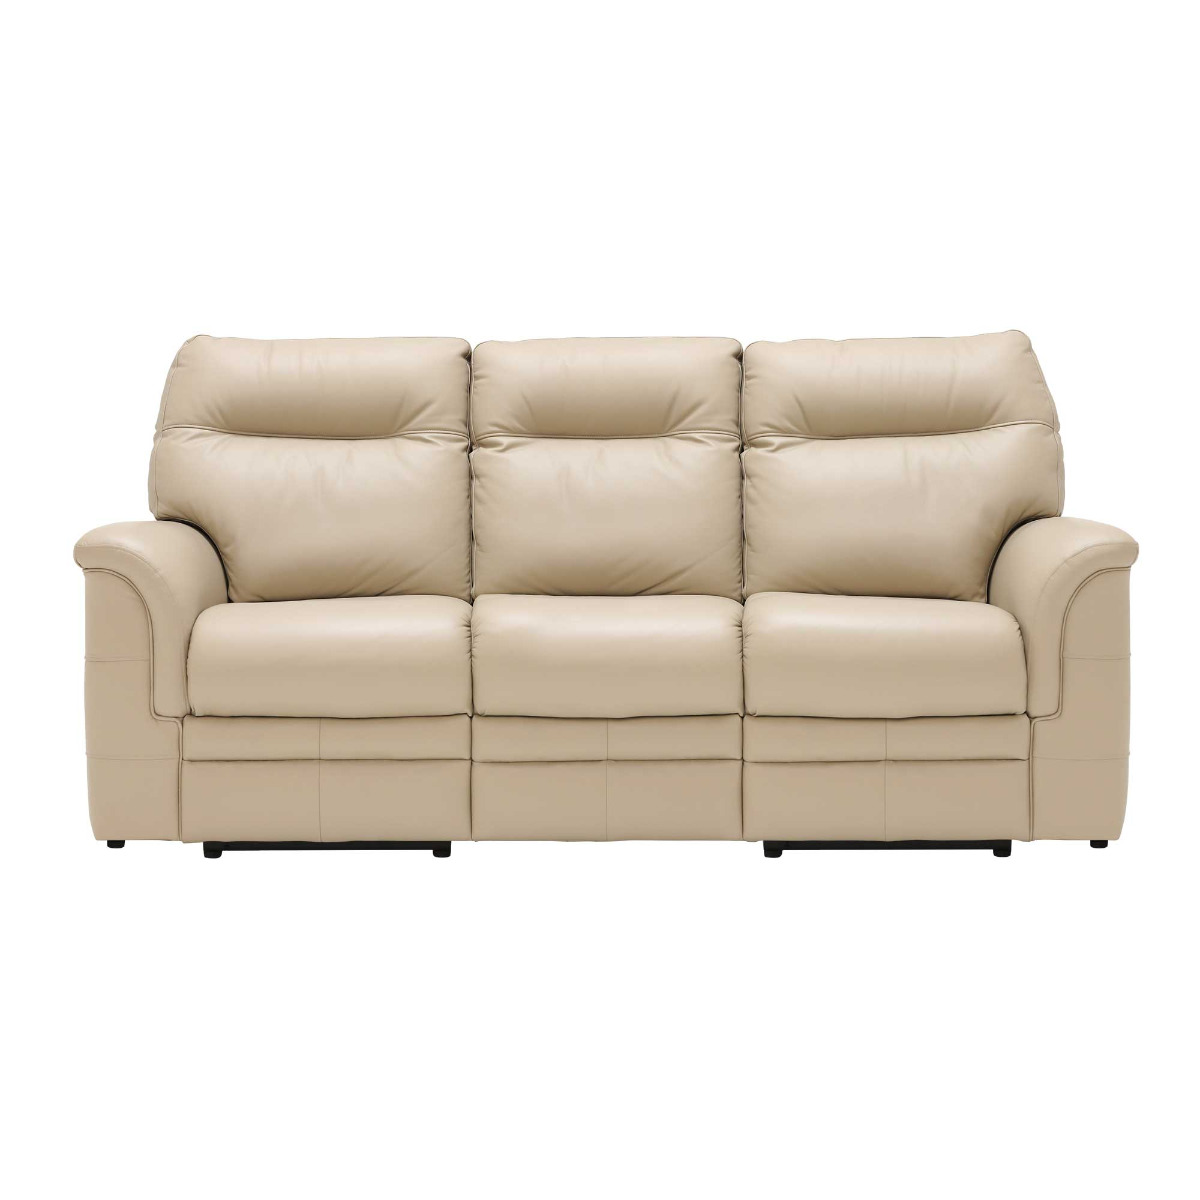 Parker Knoll Hudson 3 Seater Recliner Sofa, Leather